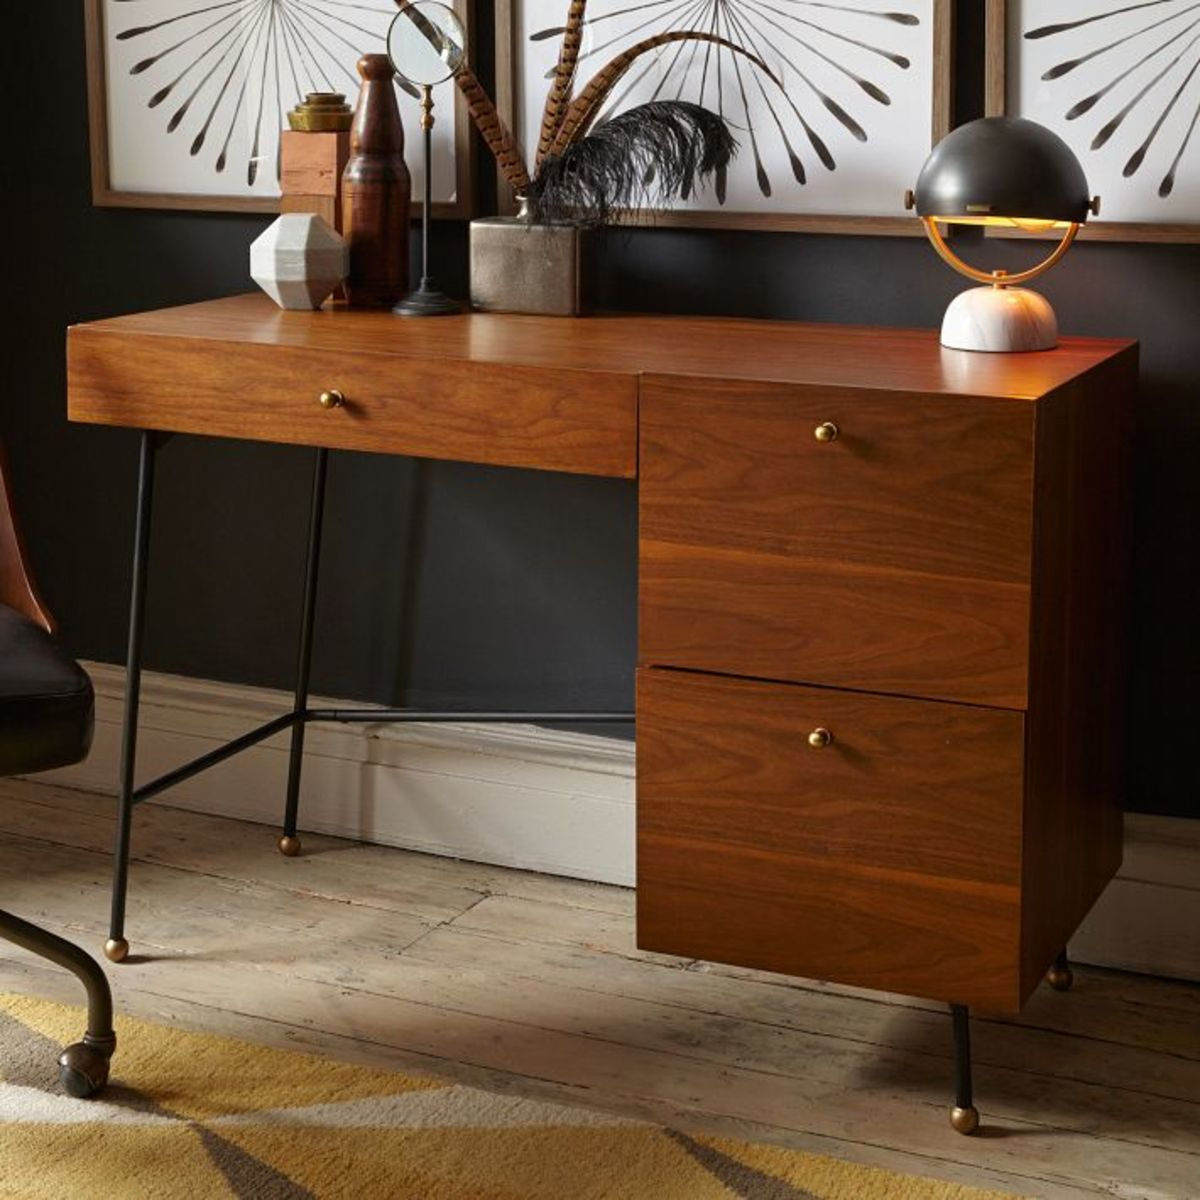 Grhopper Desk If You Don T Have A Lot Of E This Mad Men Style Would Look Great In Homes That Either Traditional Mid Century